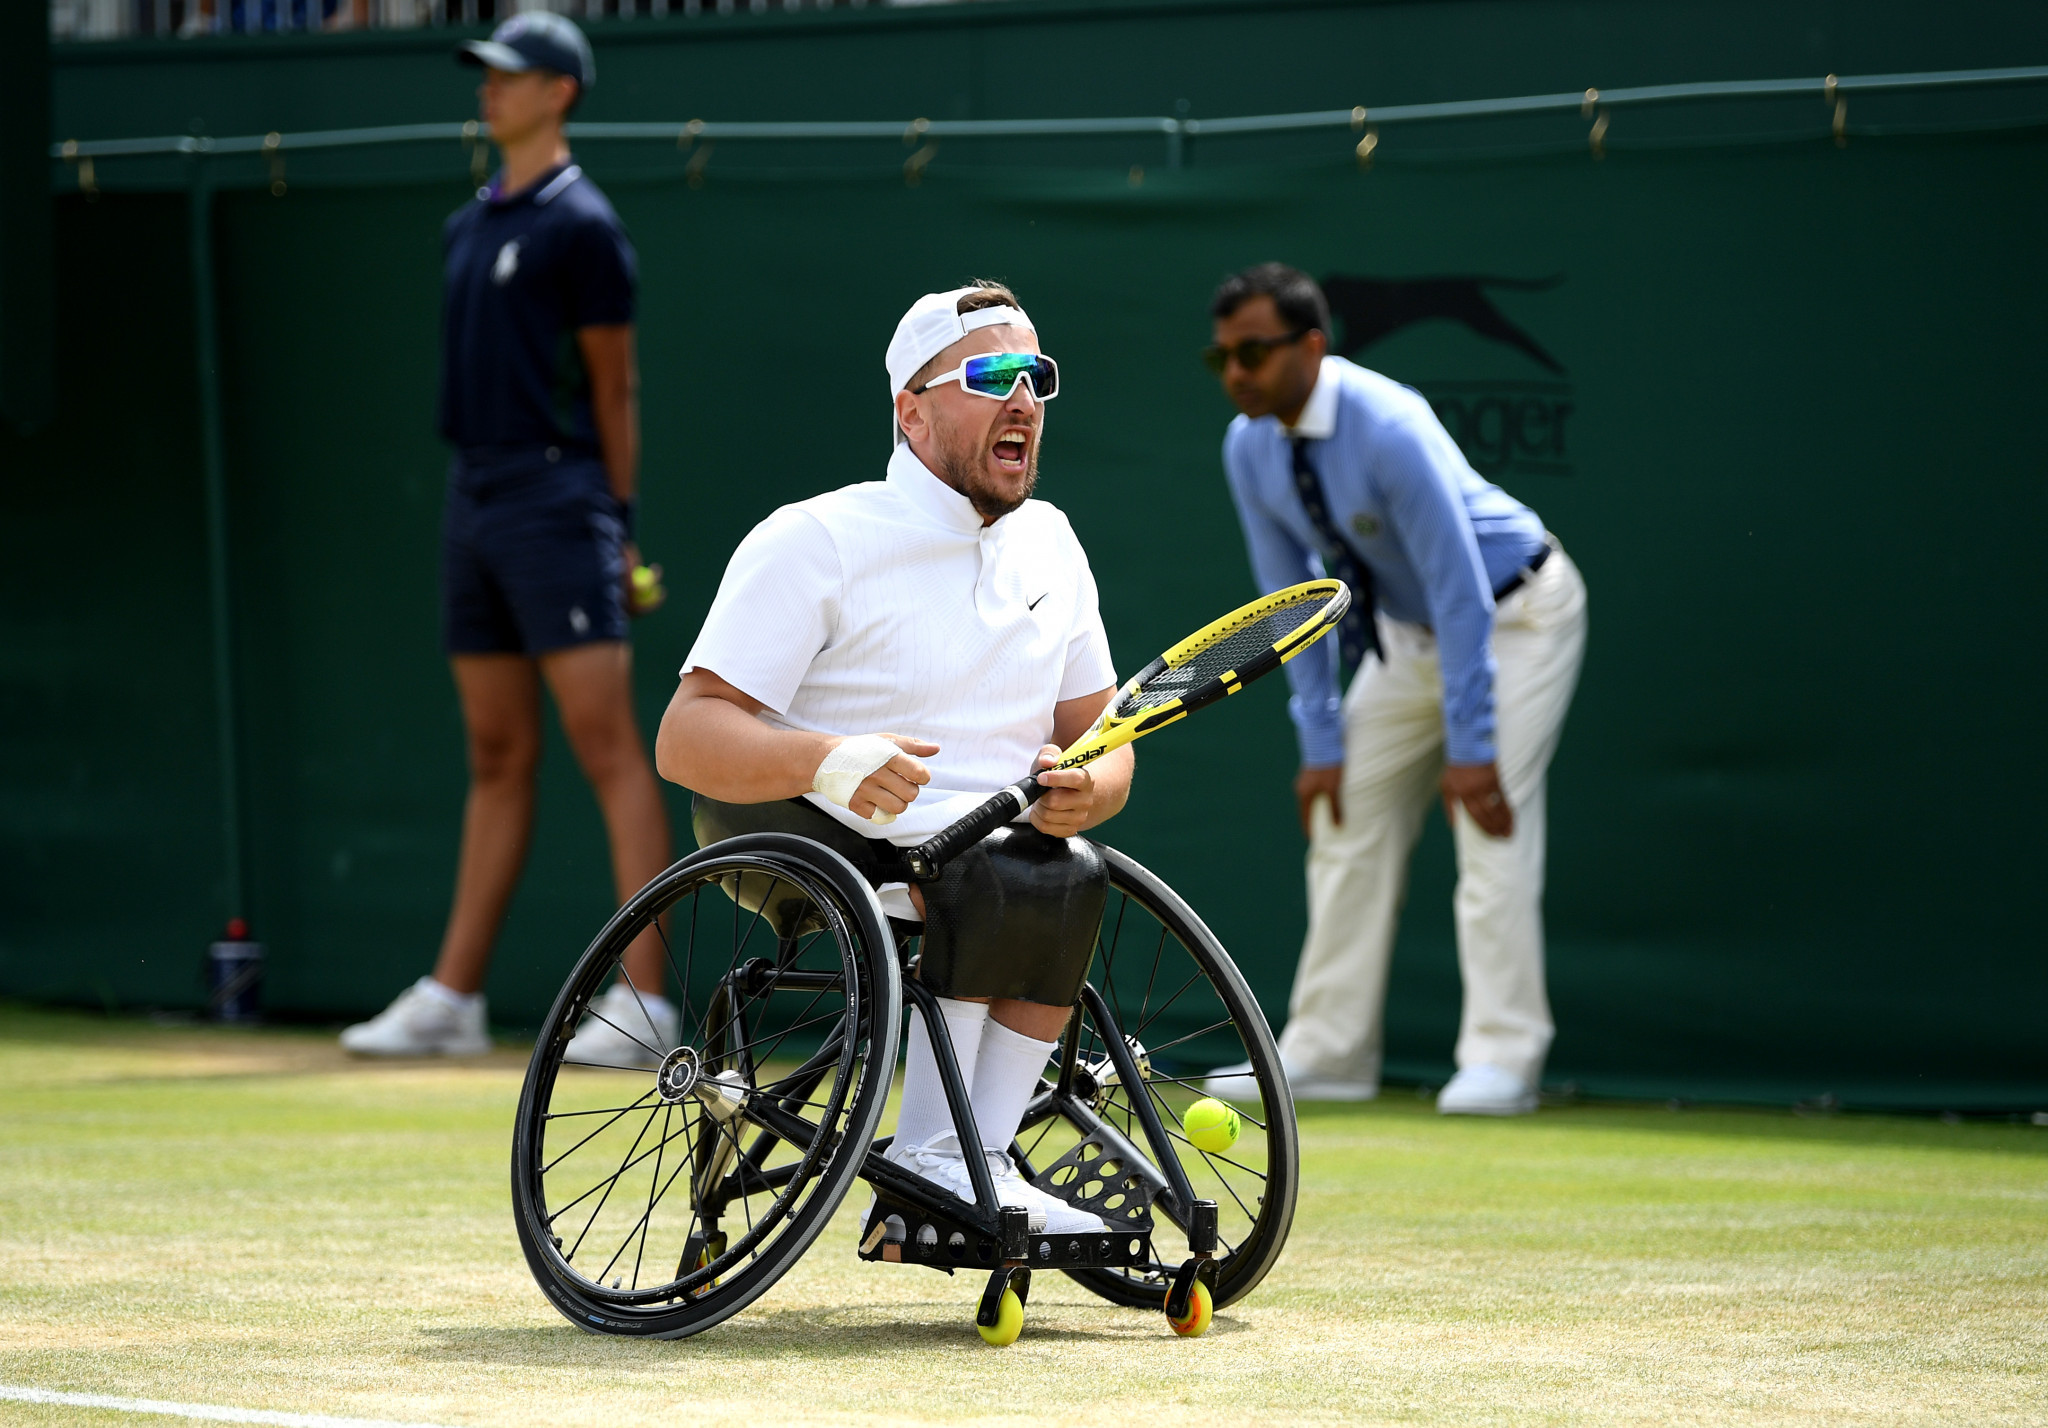 Dylan Alcott could claim two calendar Grand Slams in the quad singles and doubles ©Getty Images